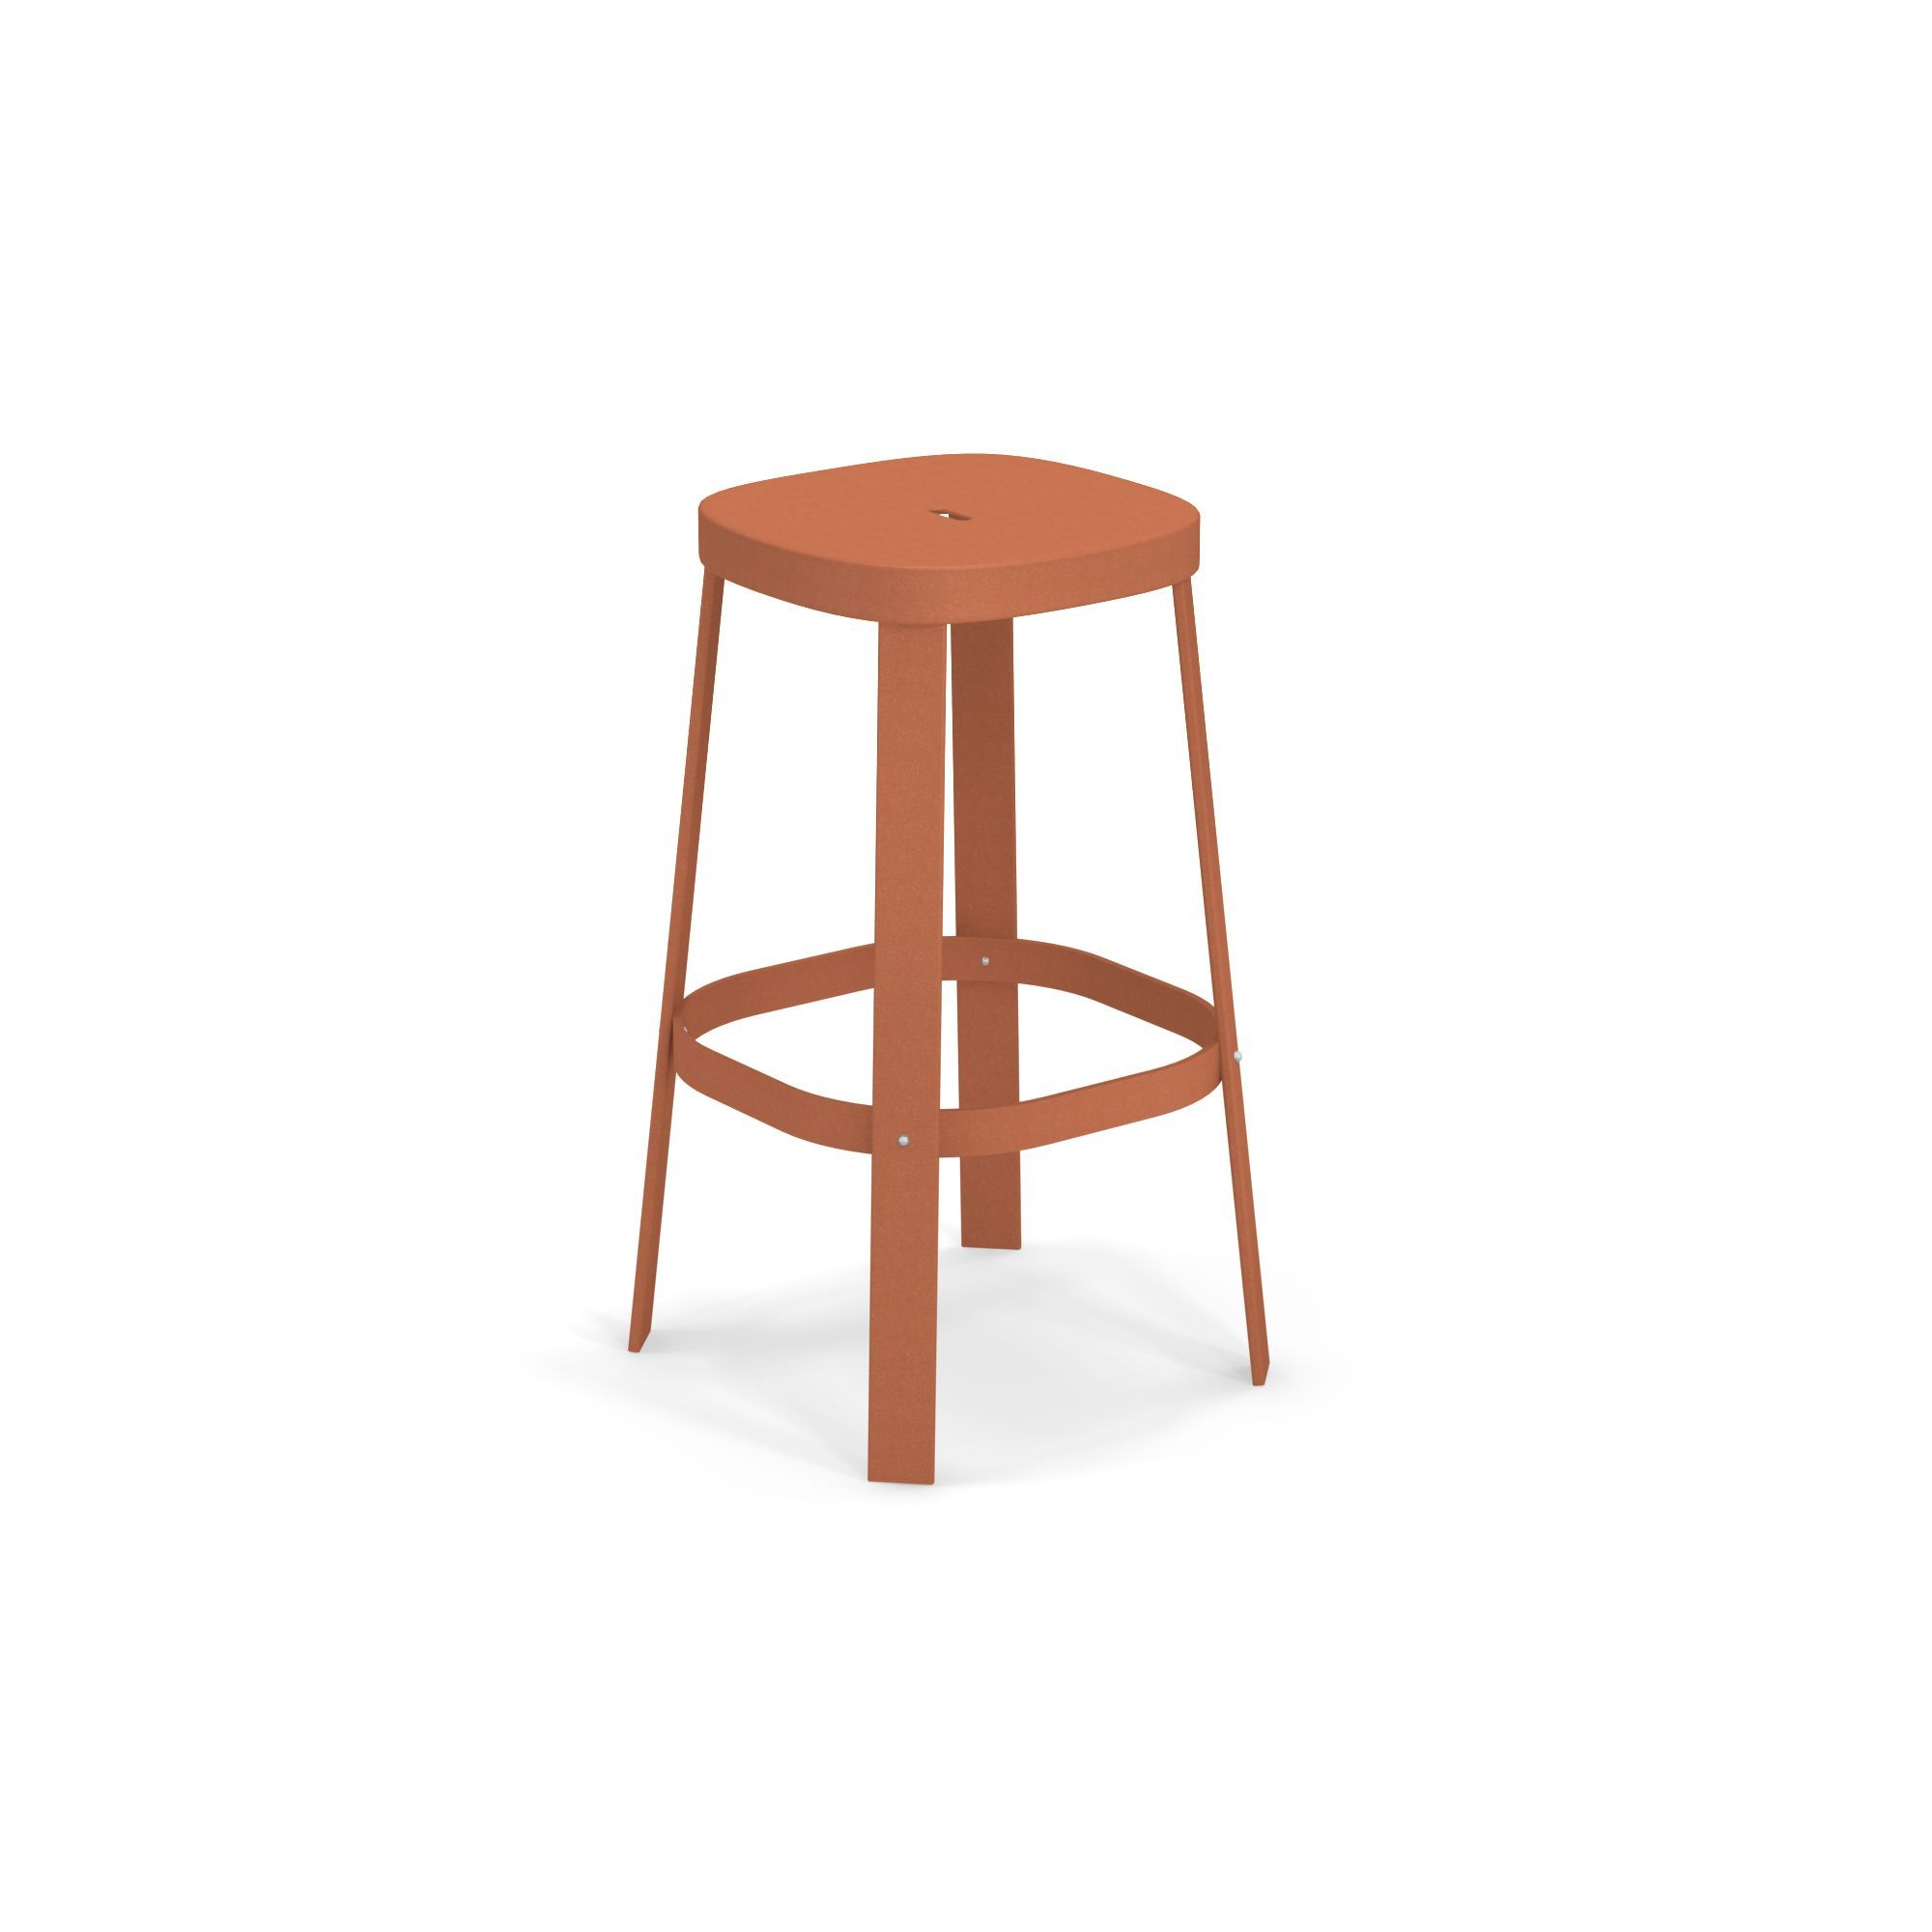 Thor Includes Two Models Chair And Stool Graced With An Elegance That Make Them Ideal For Both Resid Commercial Outdoor Furniture Bar Stools Classic Cushions